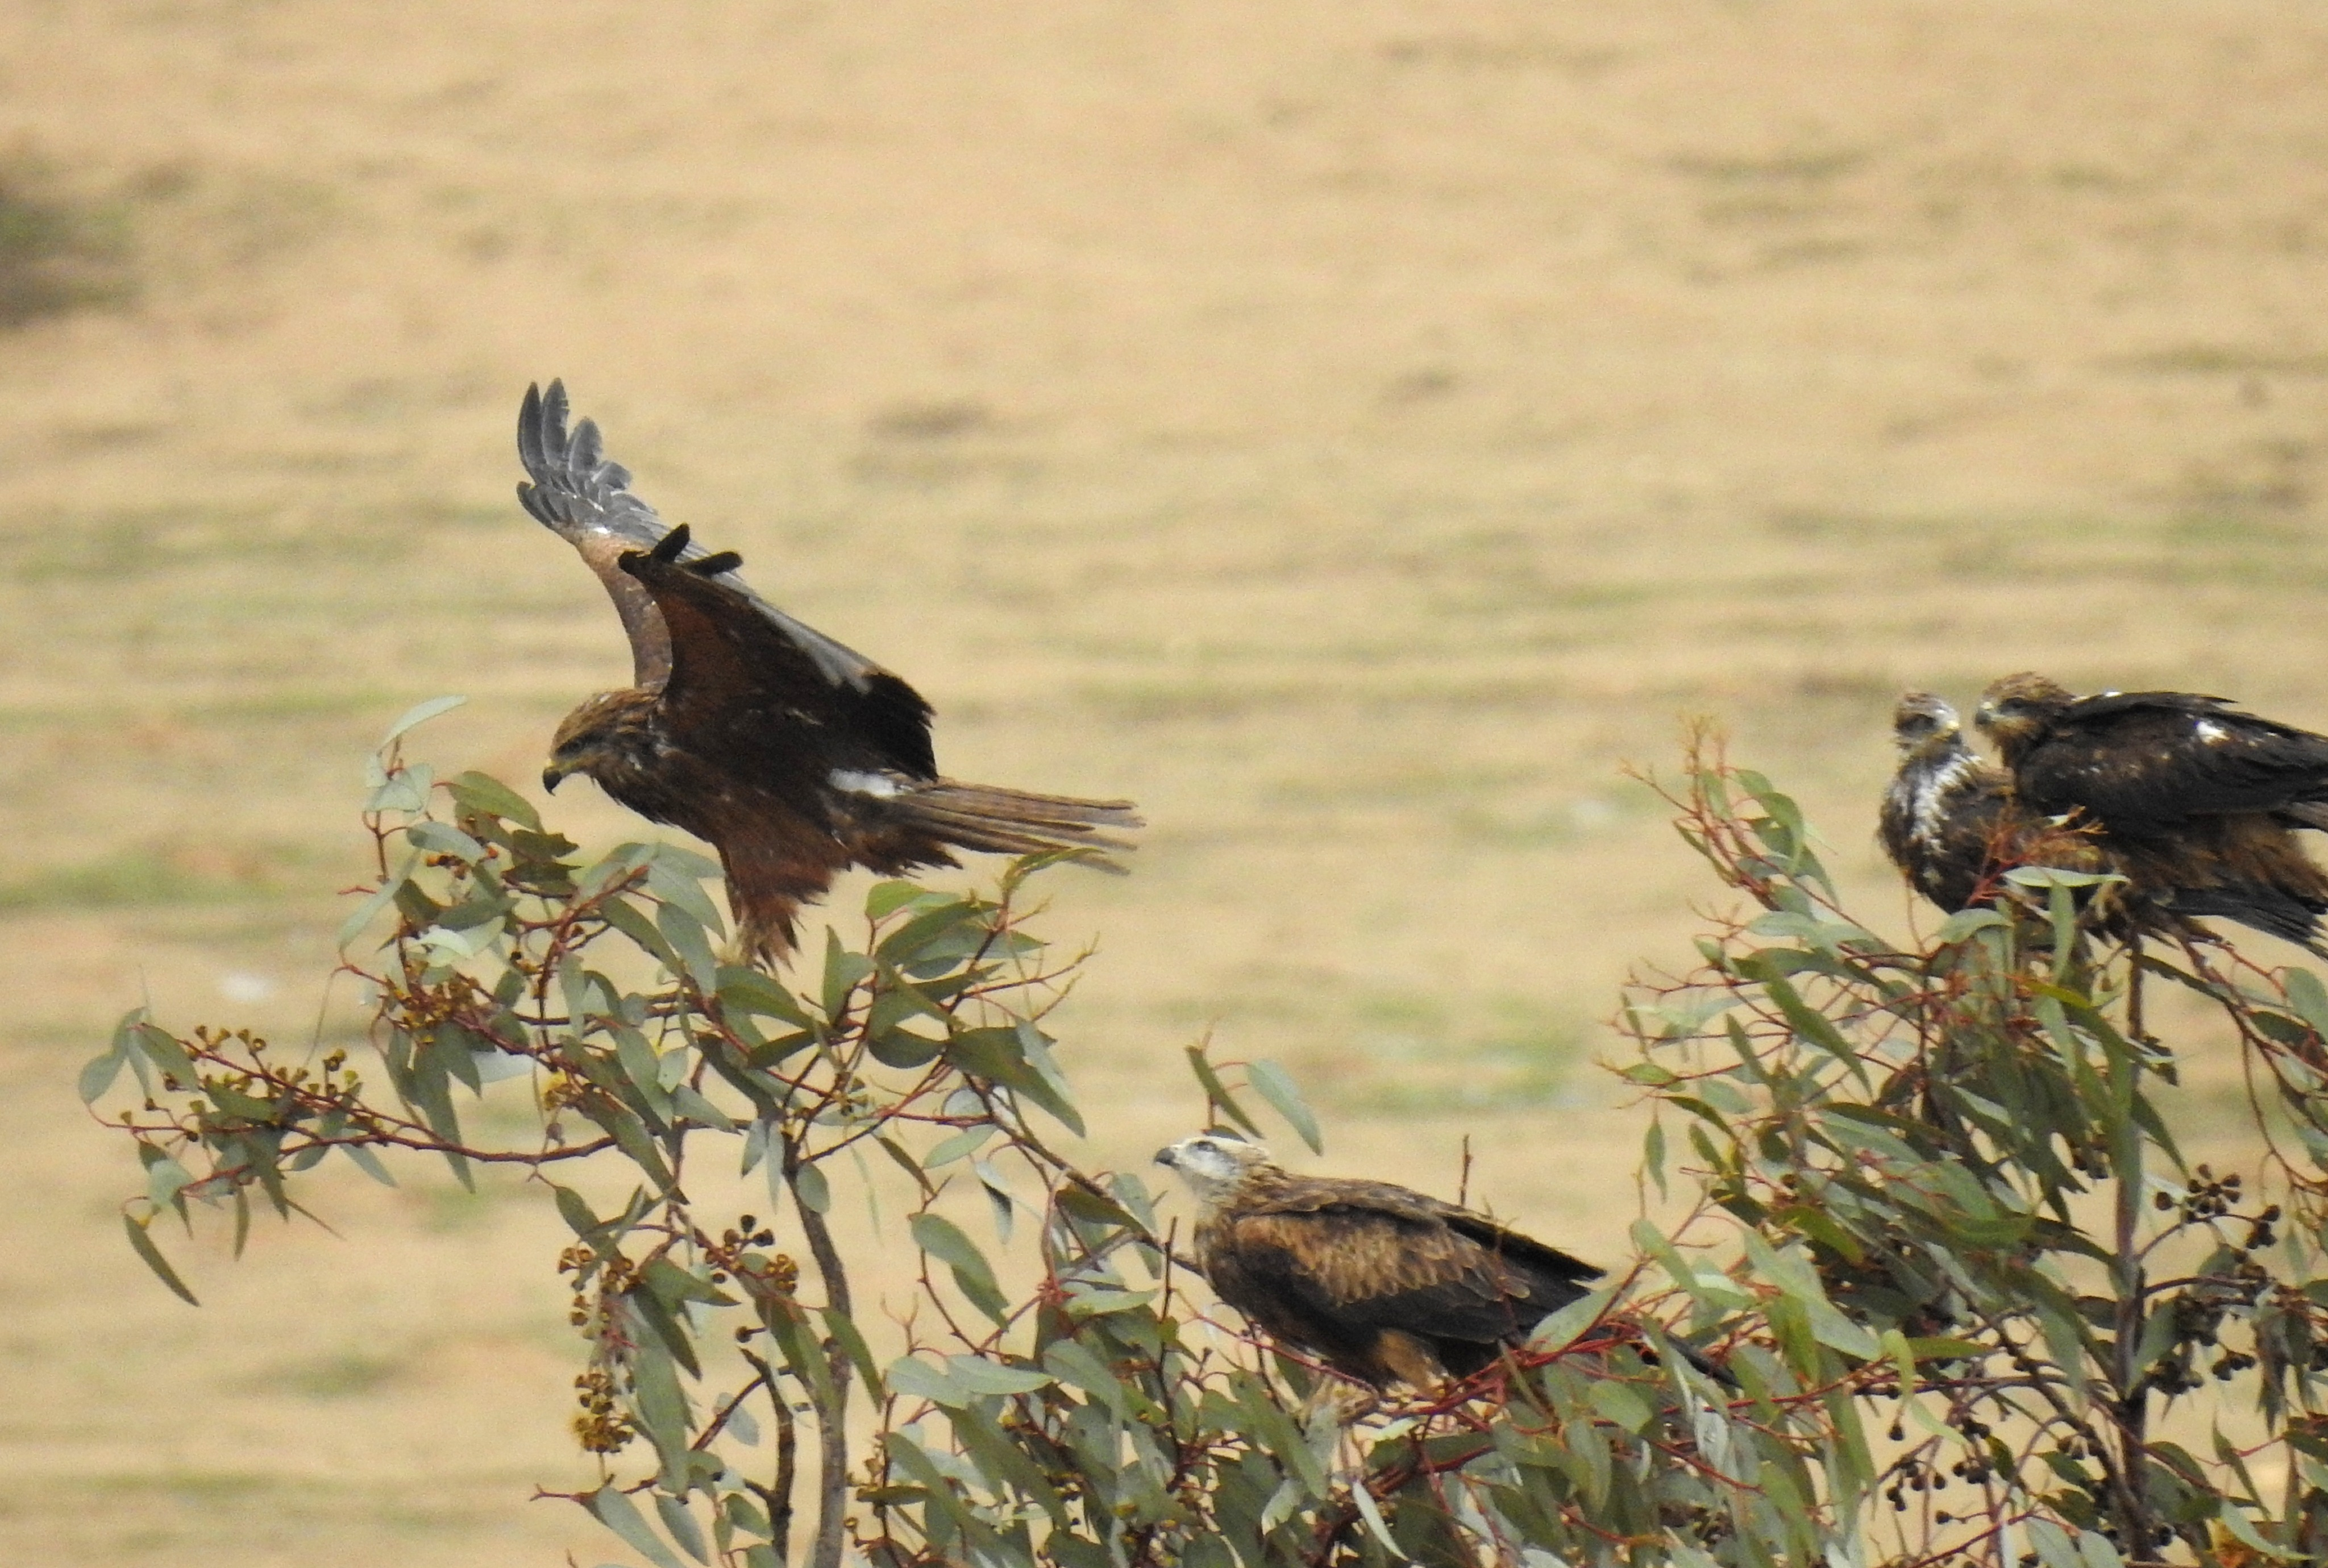 Some black kites perched nearby